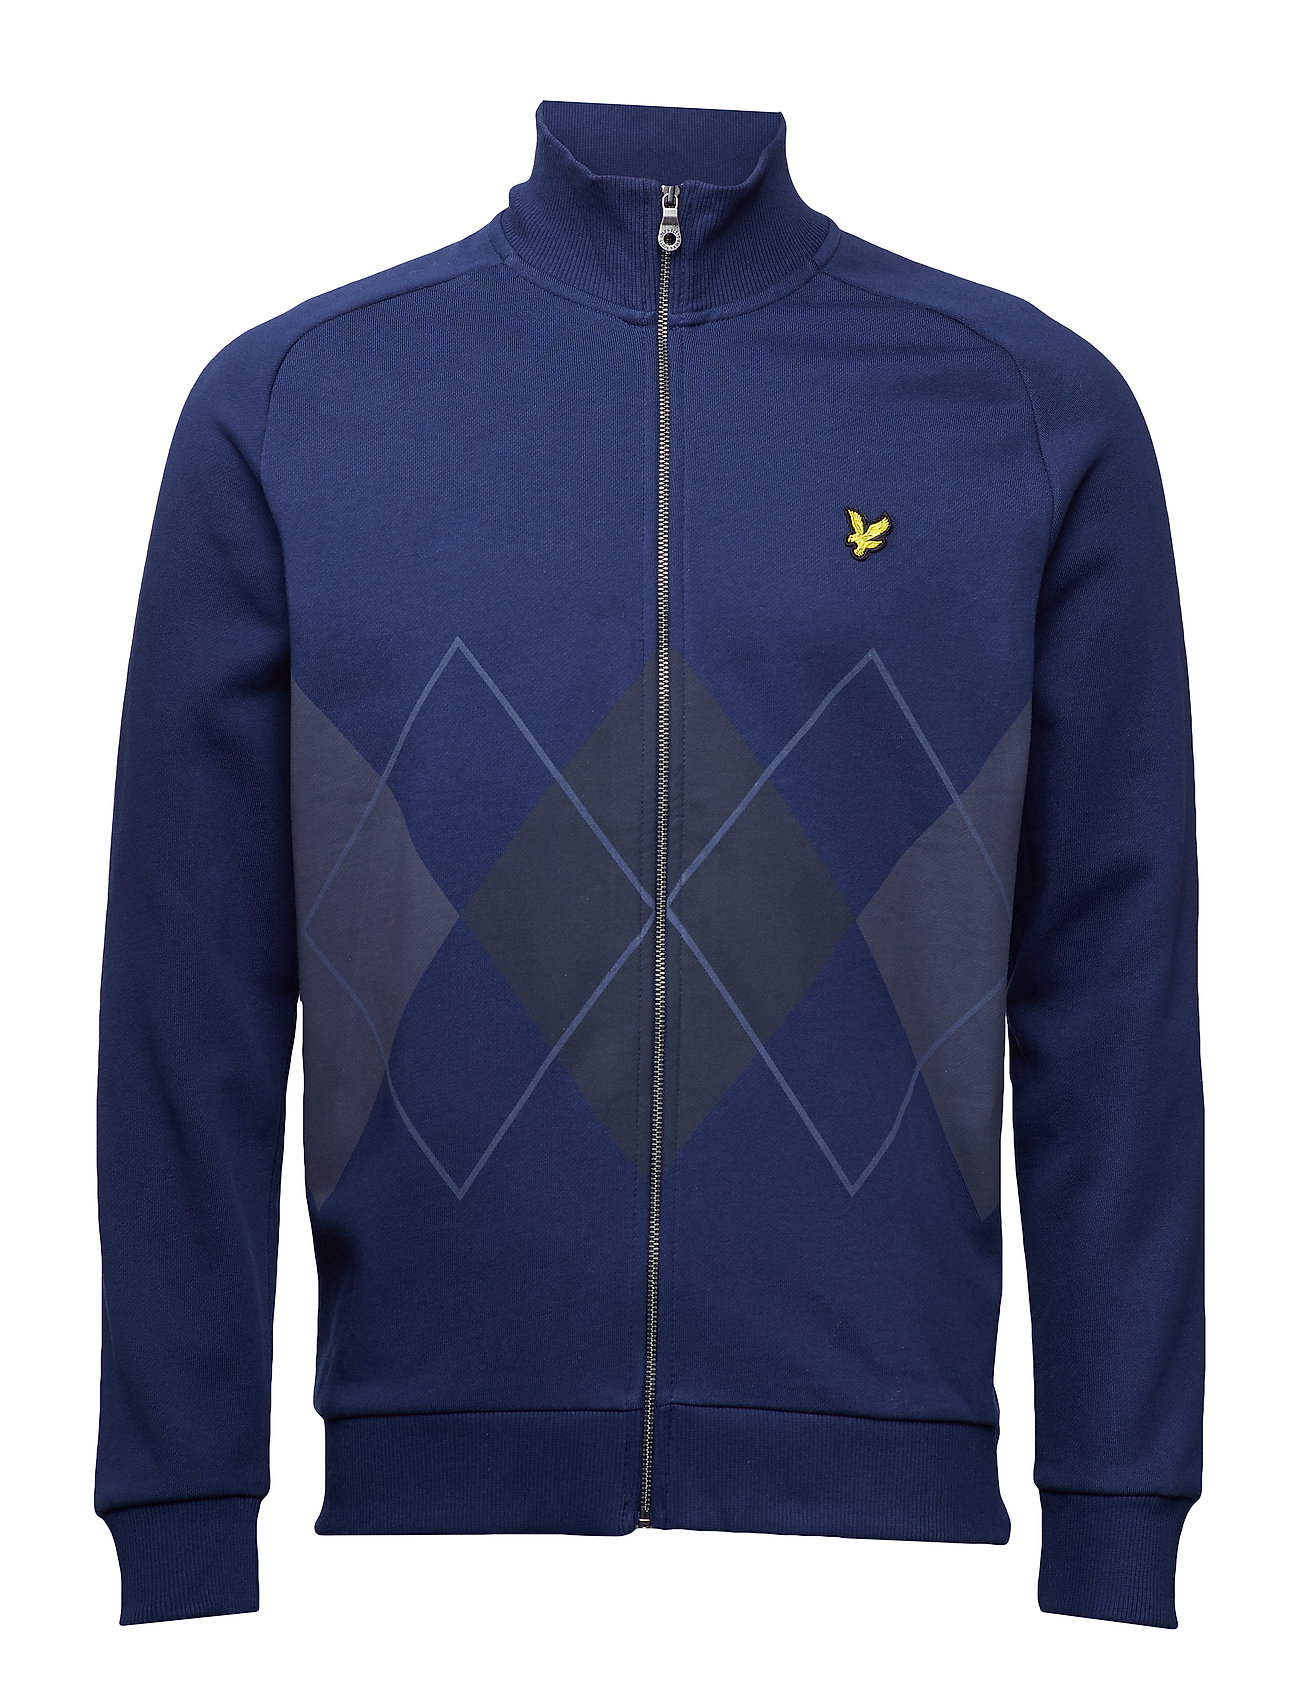 Lyle & Scott Argyle Zip Through Sweatshirt Ögrönlar